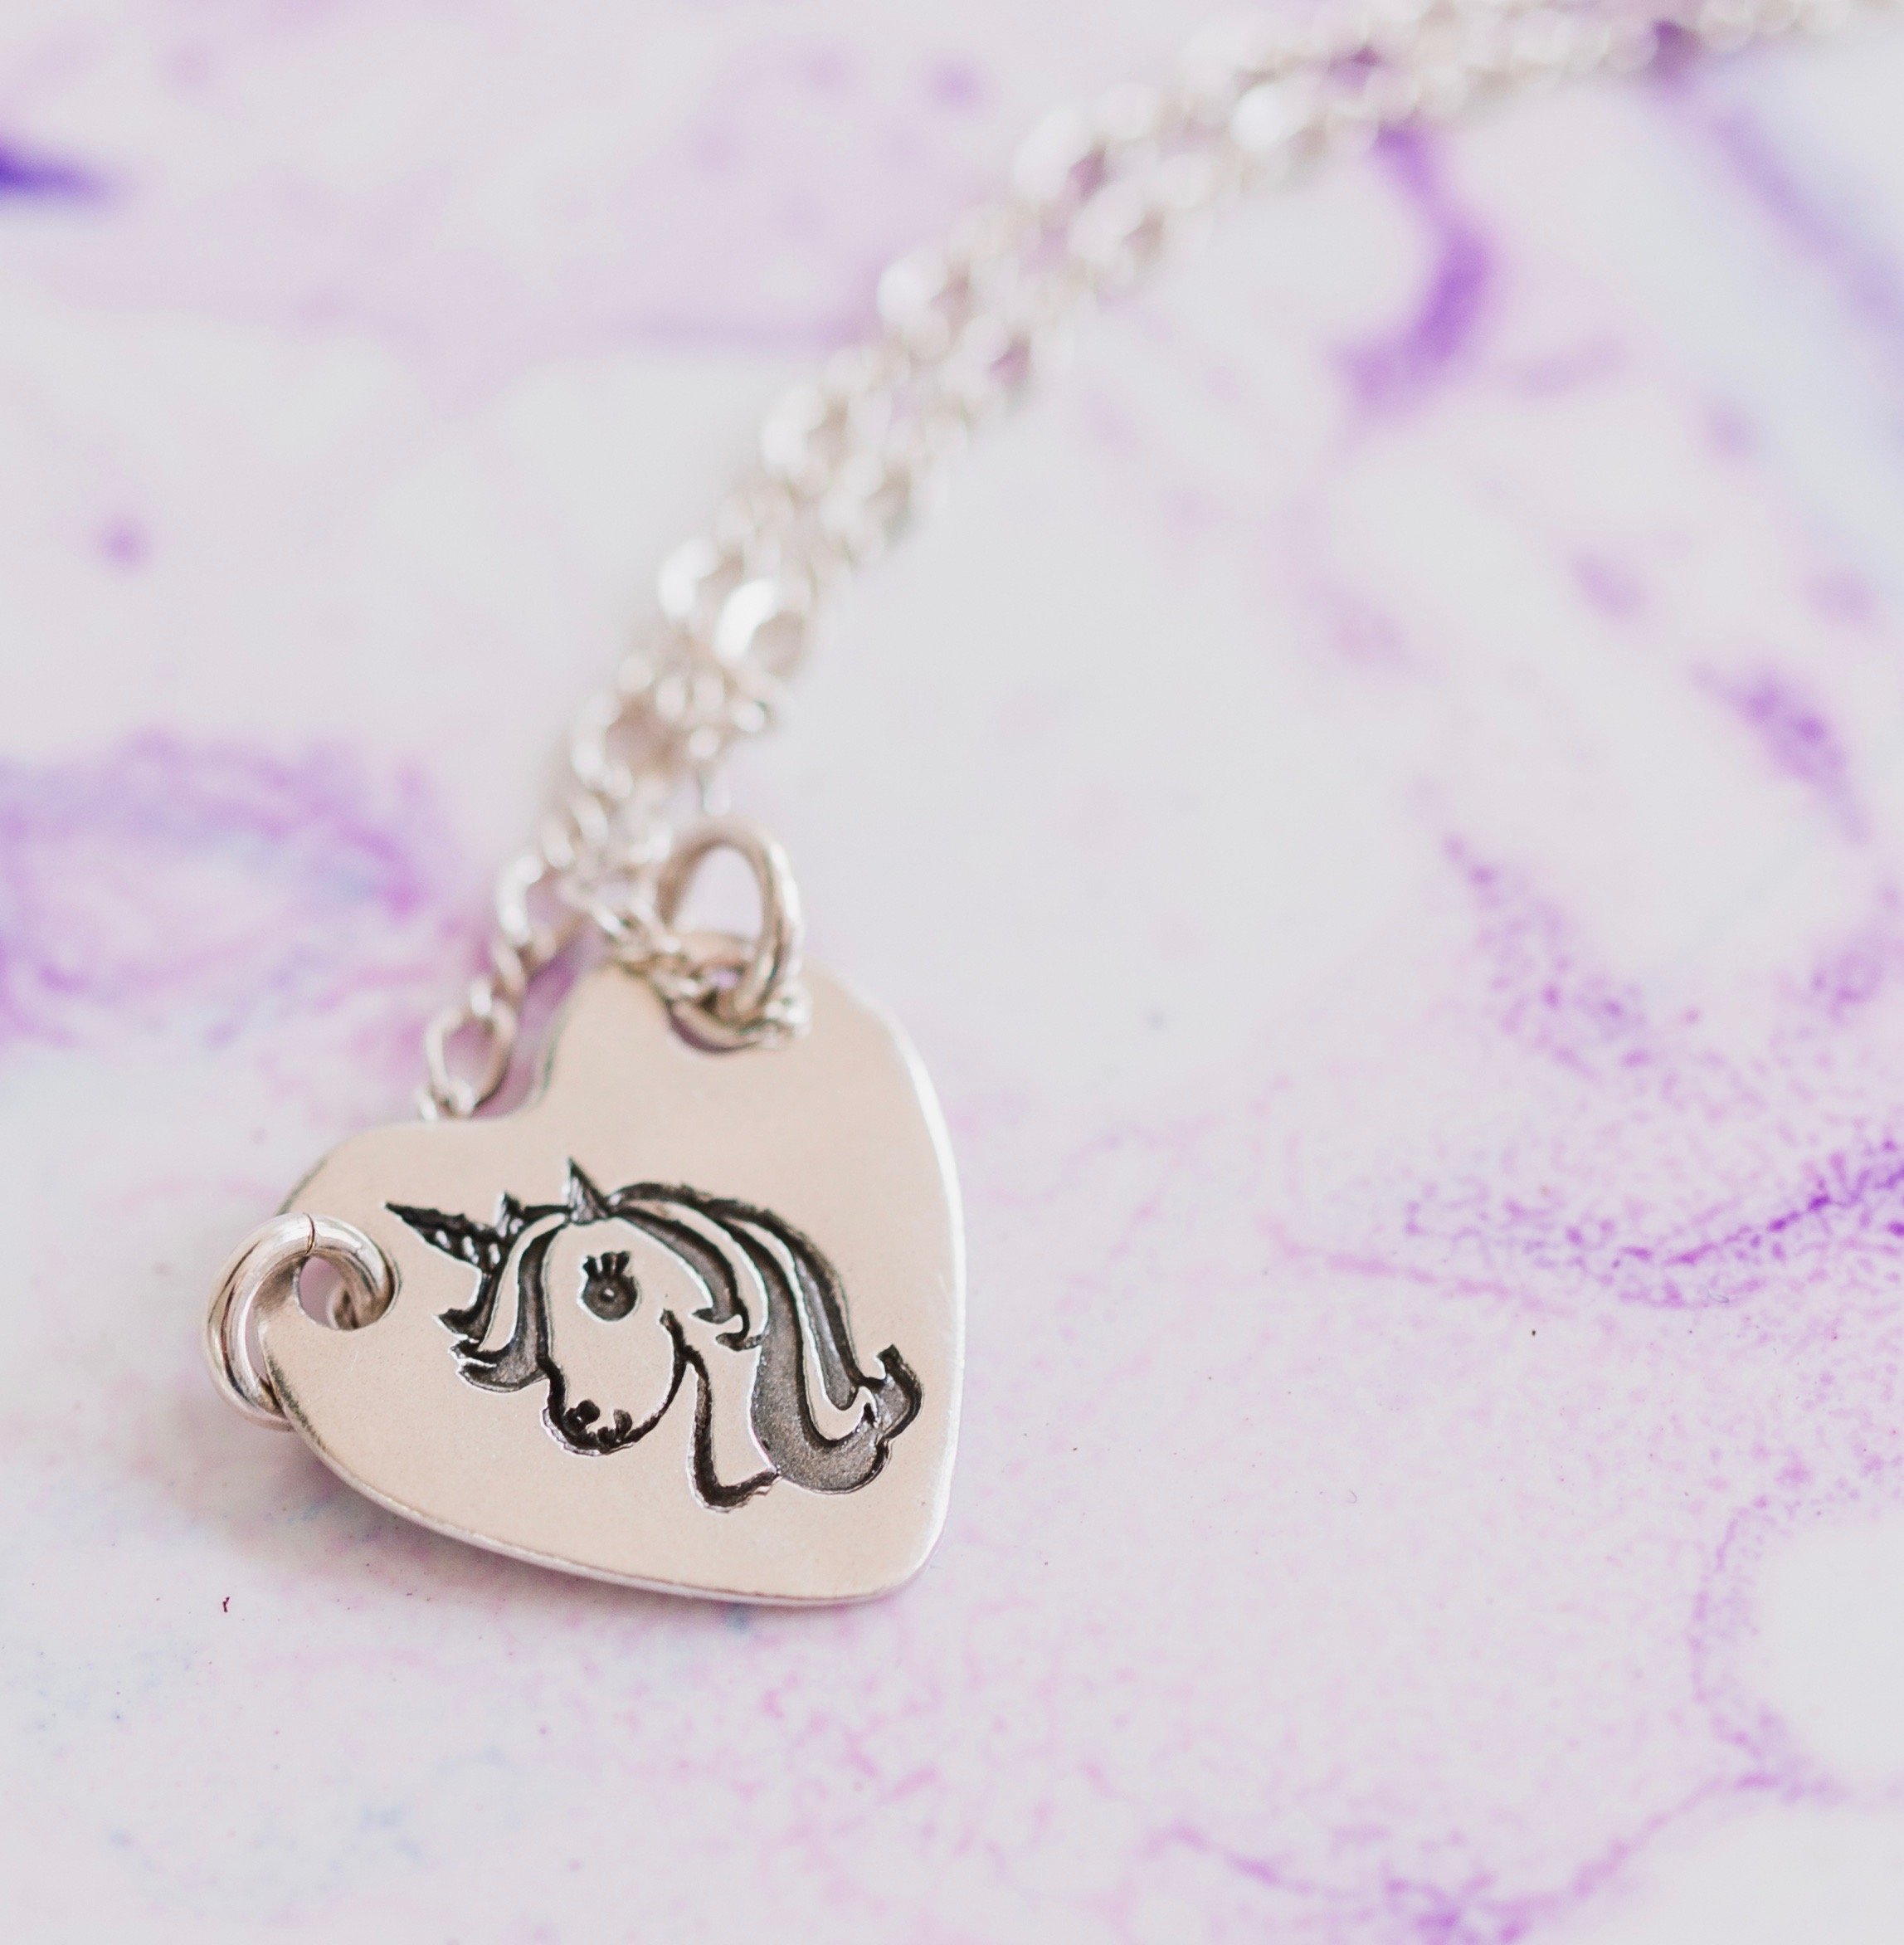 Unicorn Sterling Silver Heart Charm Pendant Necklace Jewelry Gift for Little Girl